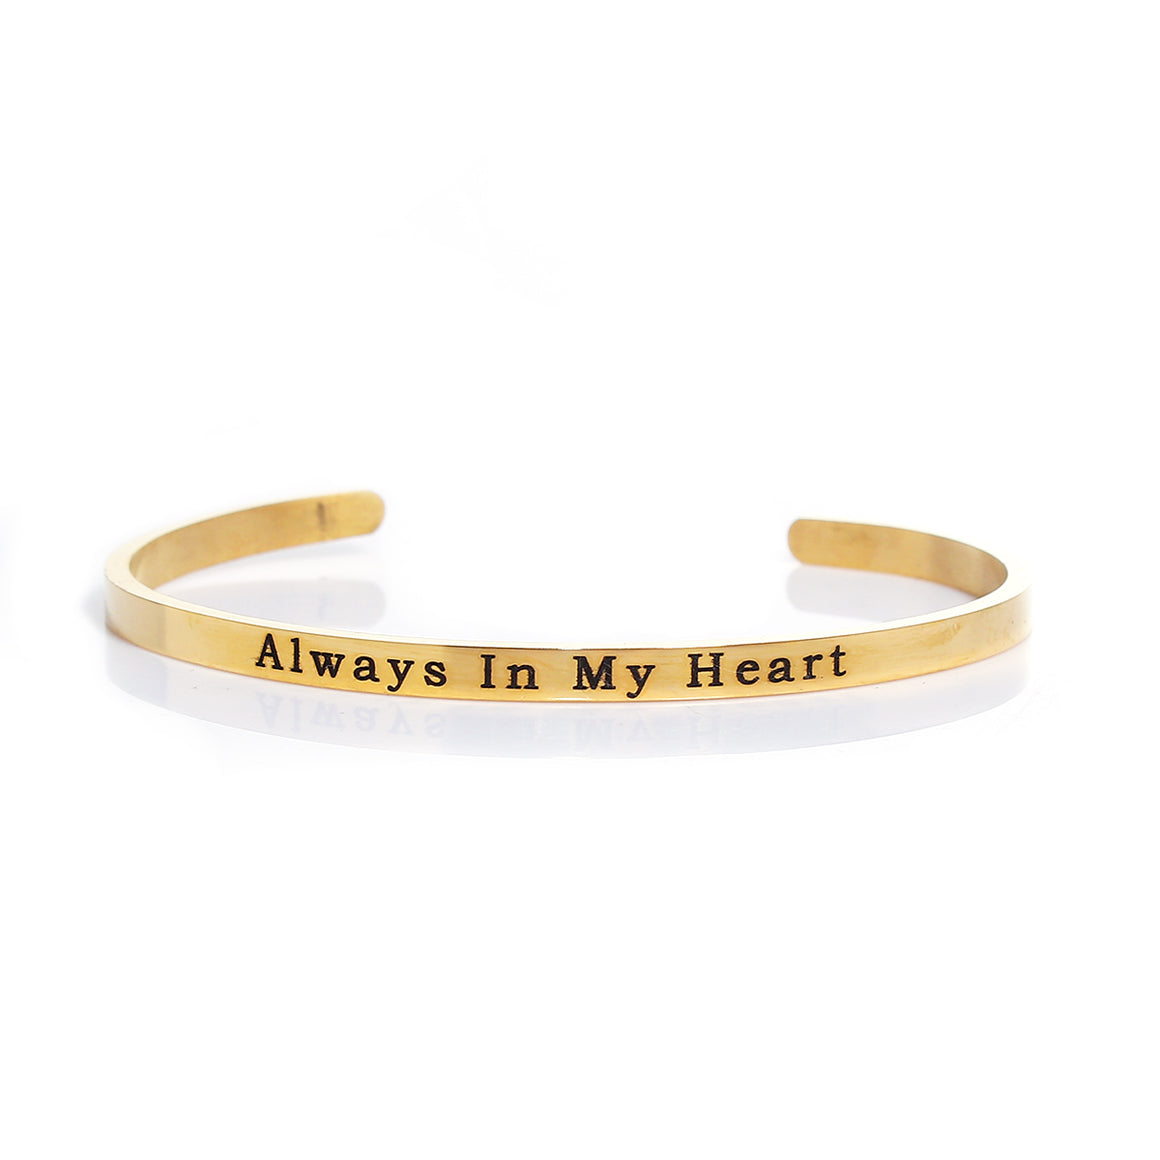 Always In My Heart Gold Plated Stainless Steel Stacking Bangle Bracelet Inspirational Quote Bracelet Positive Energy Cuff Bracelet